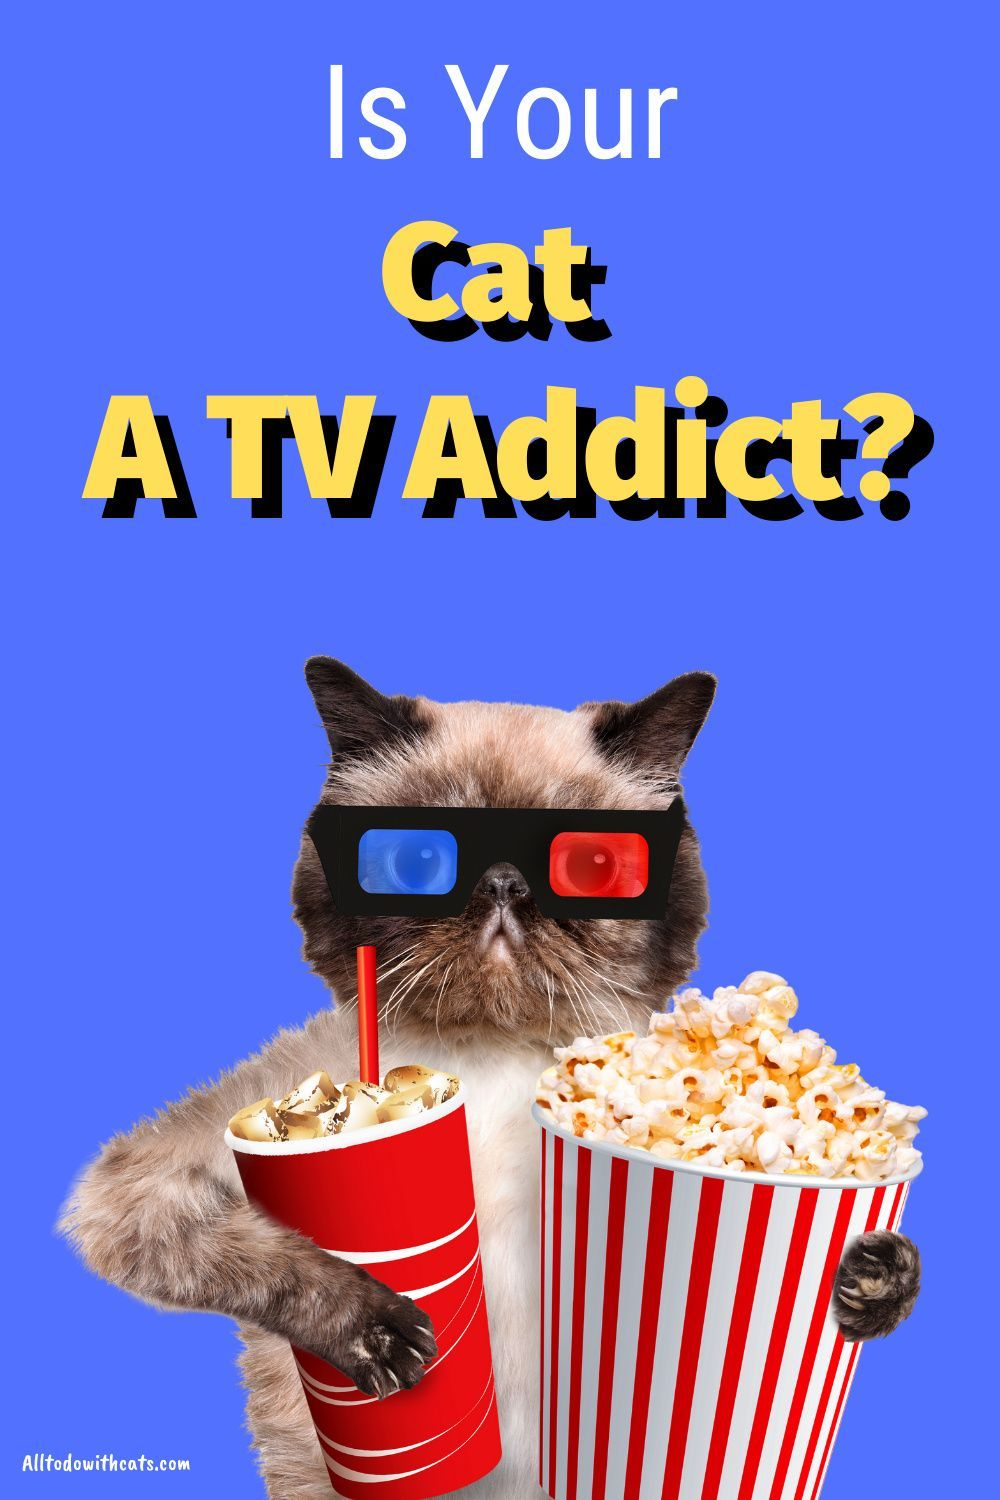 Can Cats Watch TV? You'll be surprised at what your cat